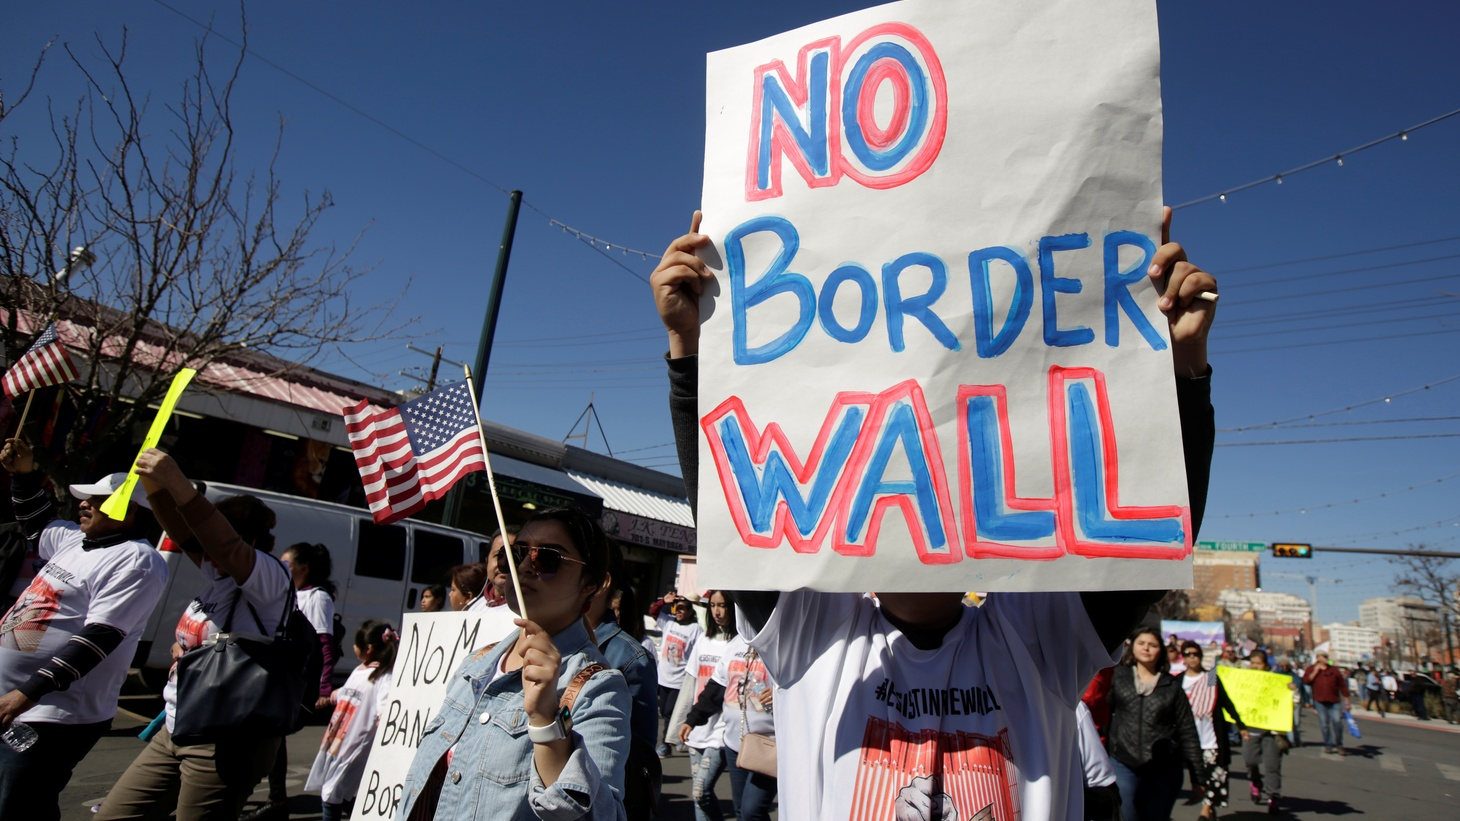 A man holds a sign during a march by members of Border Network for Human Rights to protest against U.S. President Donald Trump's proposed wall, in El Paso, Texas, U.S. January 26, 2019.